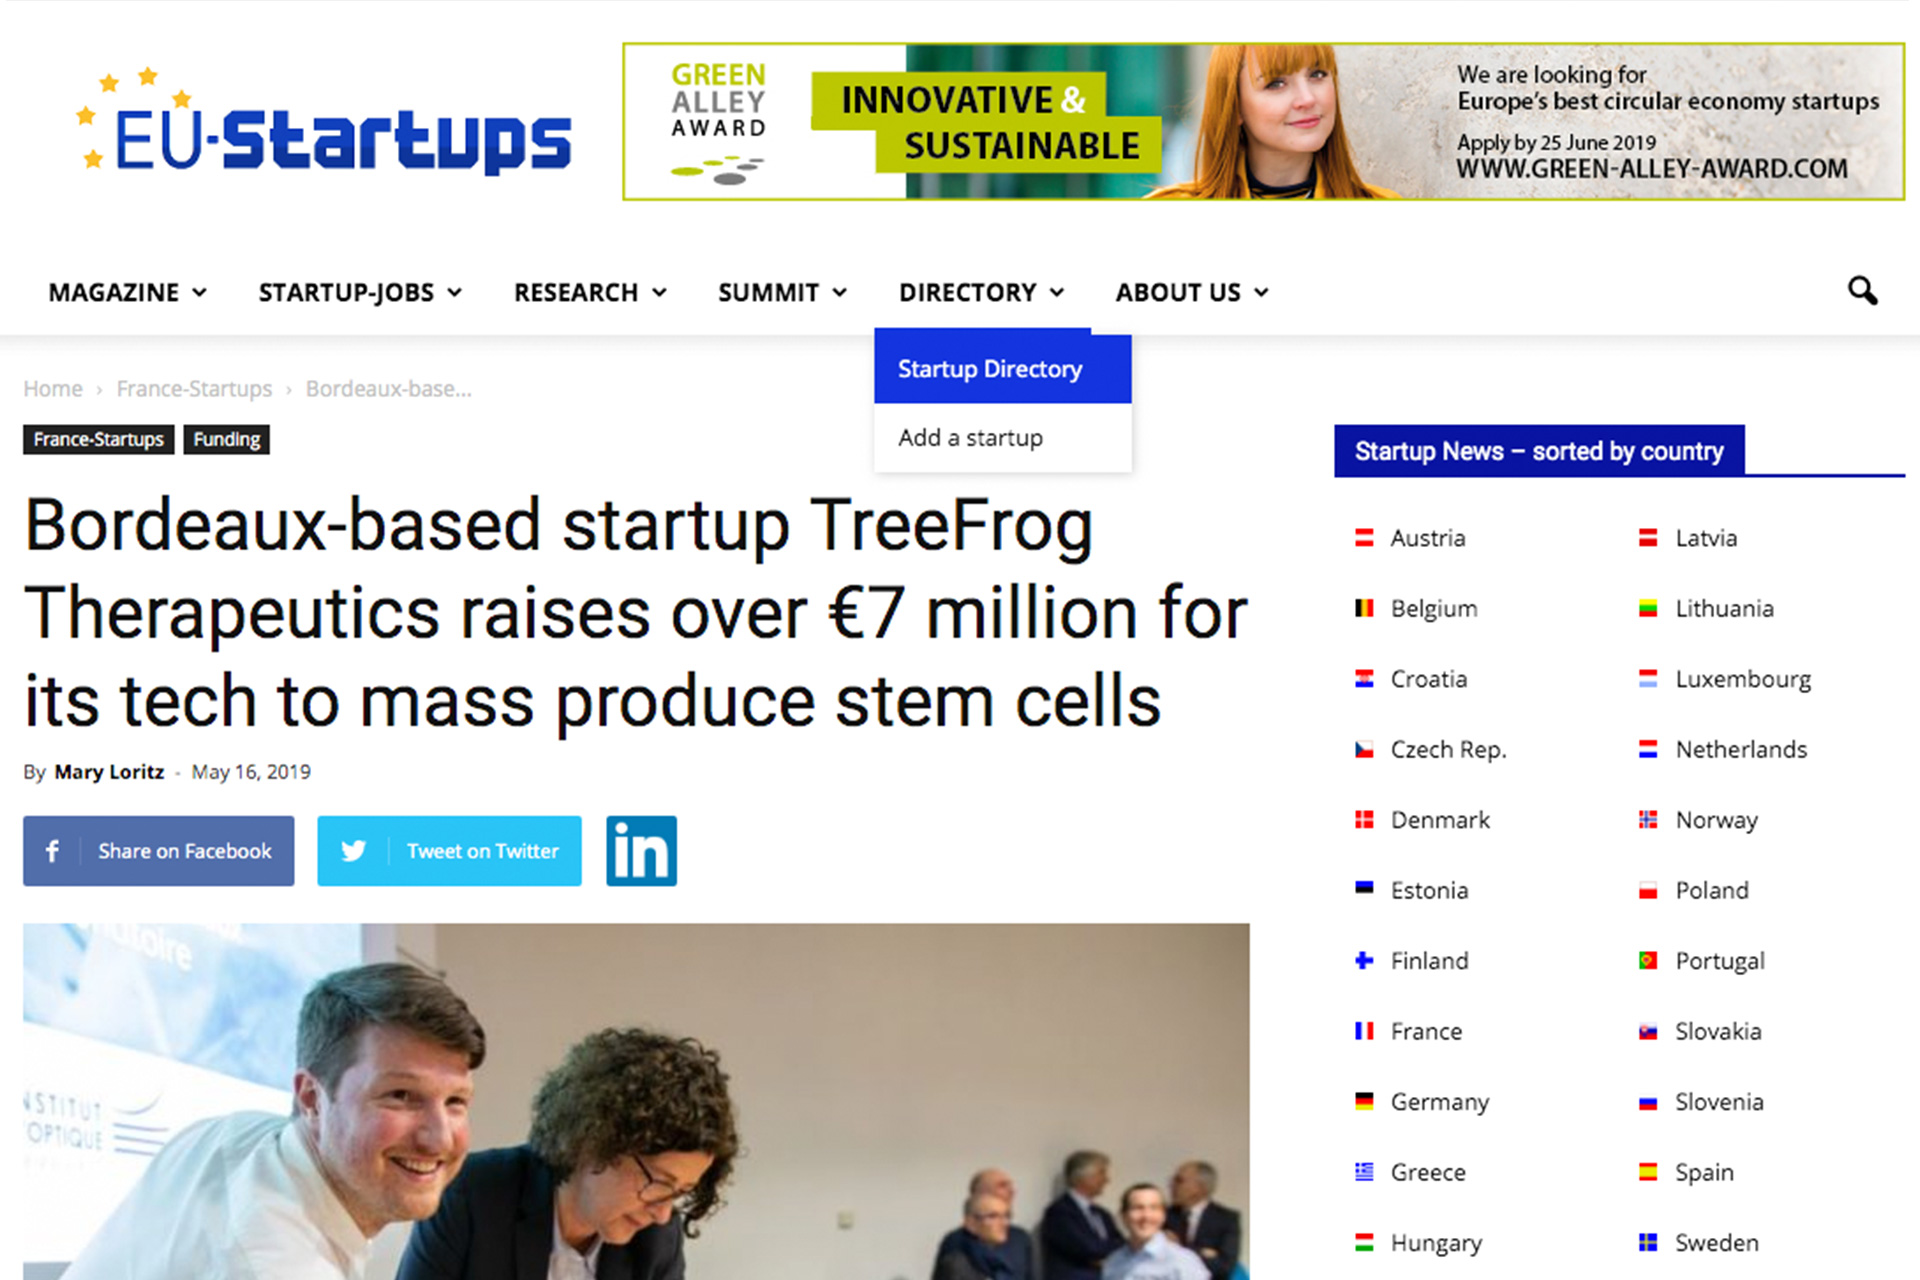 bordeaux startup TreeFrog-Therapeutics raises 7 million tech mass-produce stem cells